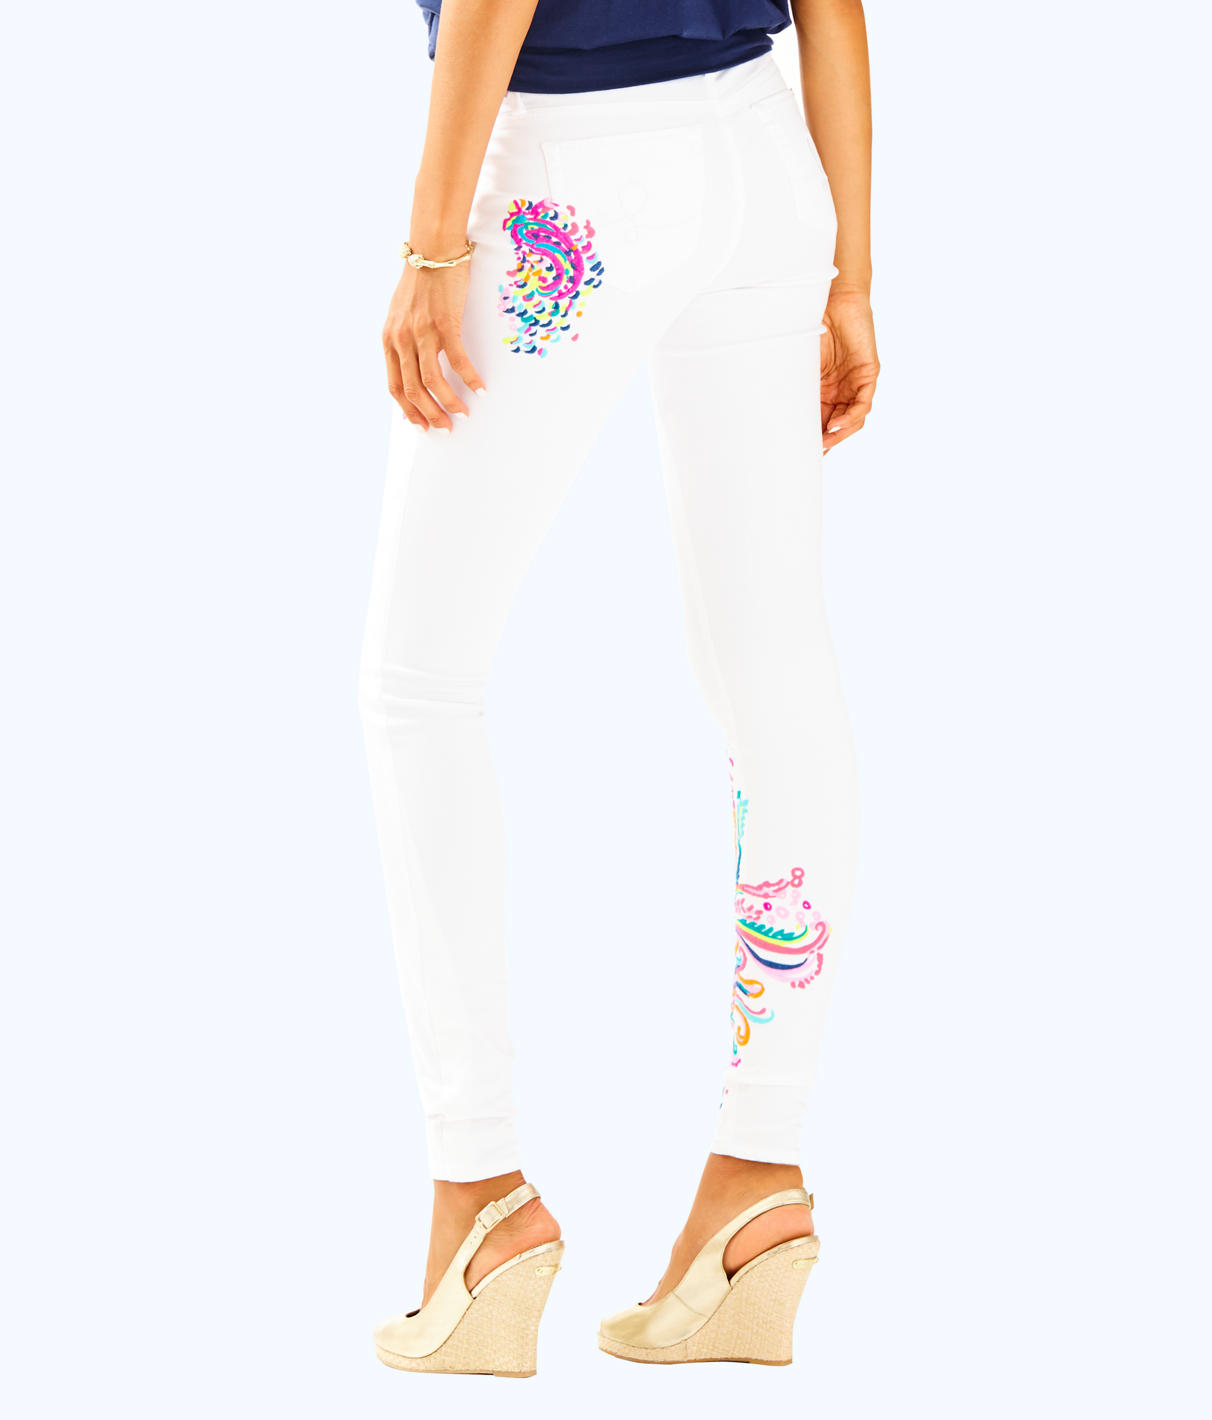 Lilly Pulitzer Lilly Pulitzer Womens 31